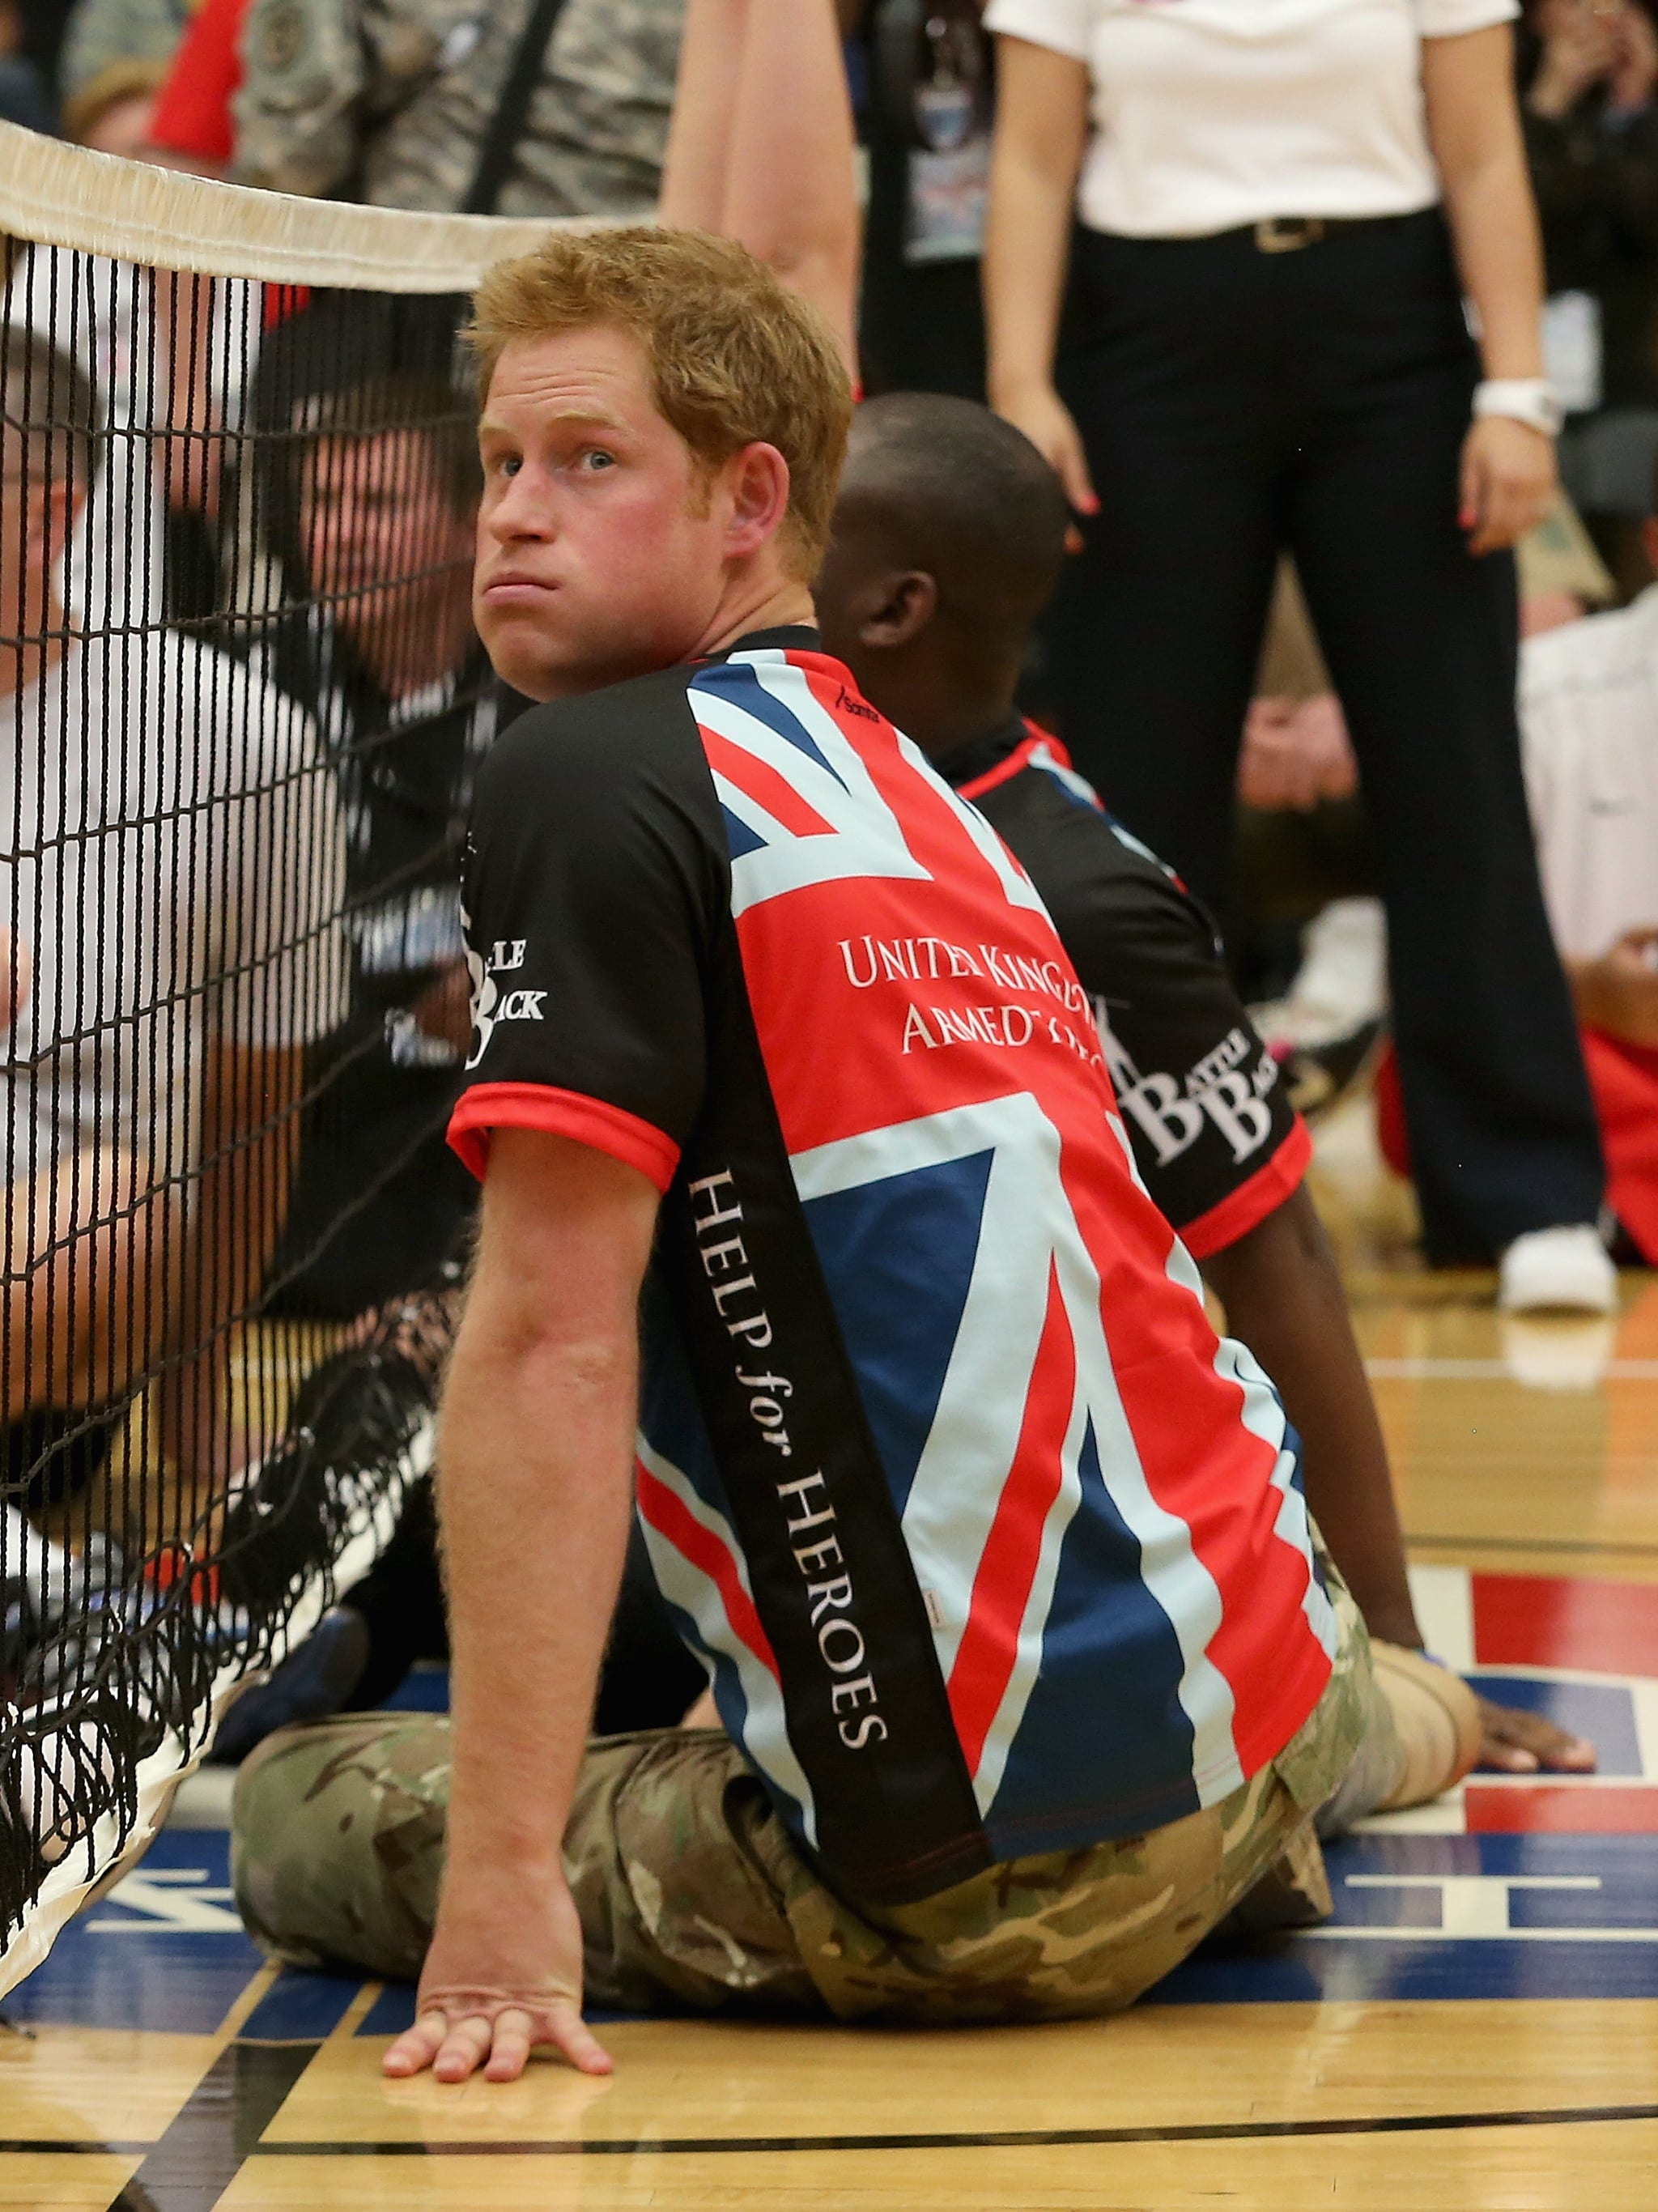 A Prince at Play: Harry Rocks the Warrior Games During His US Tour